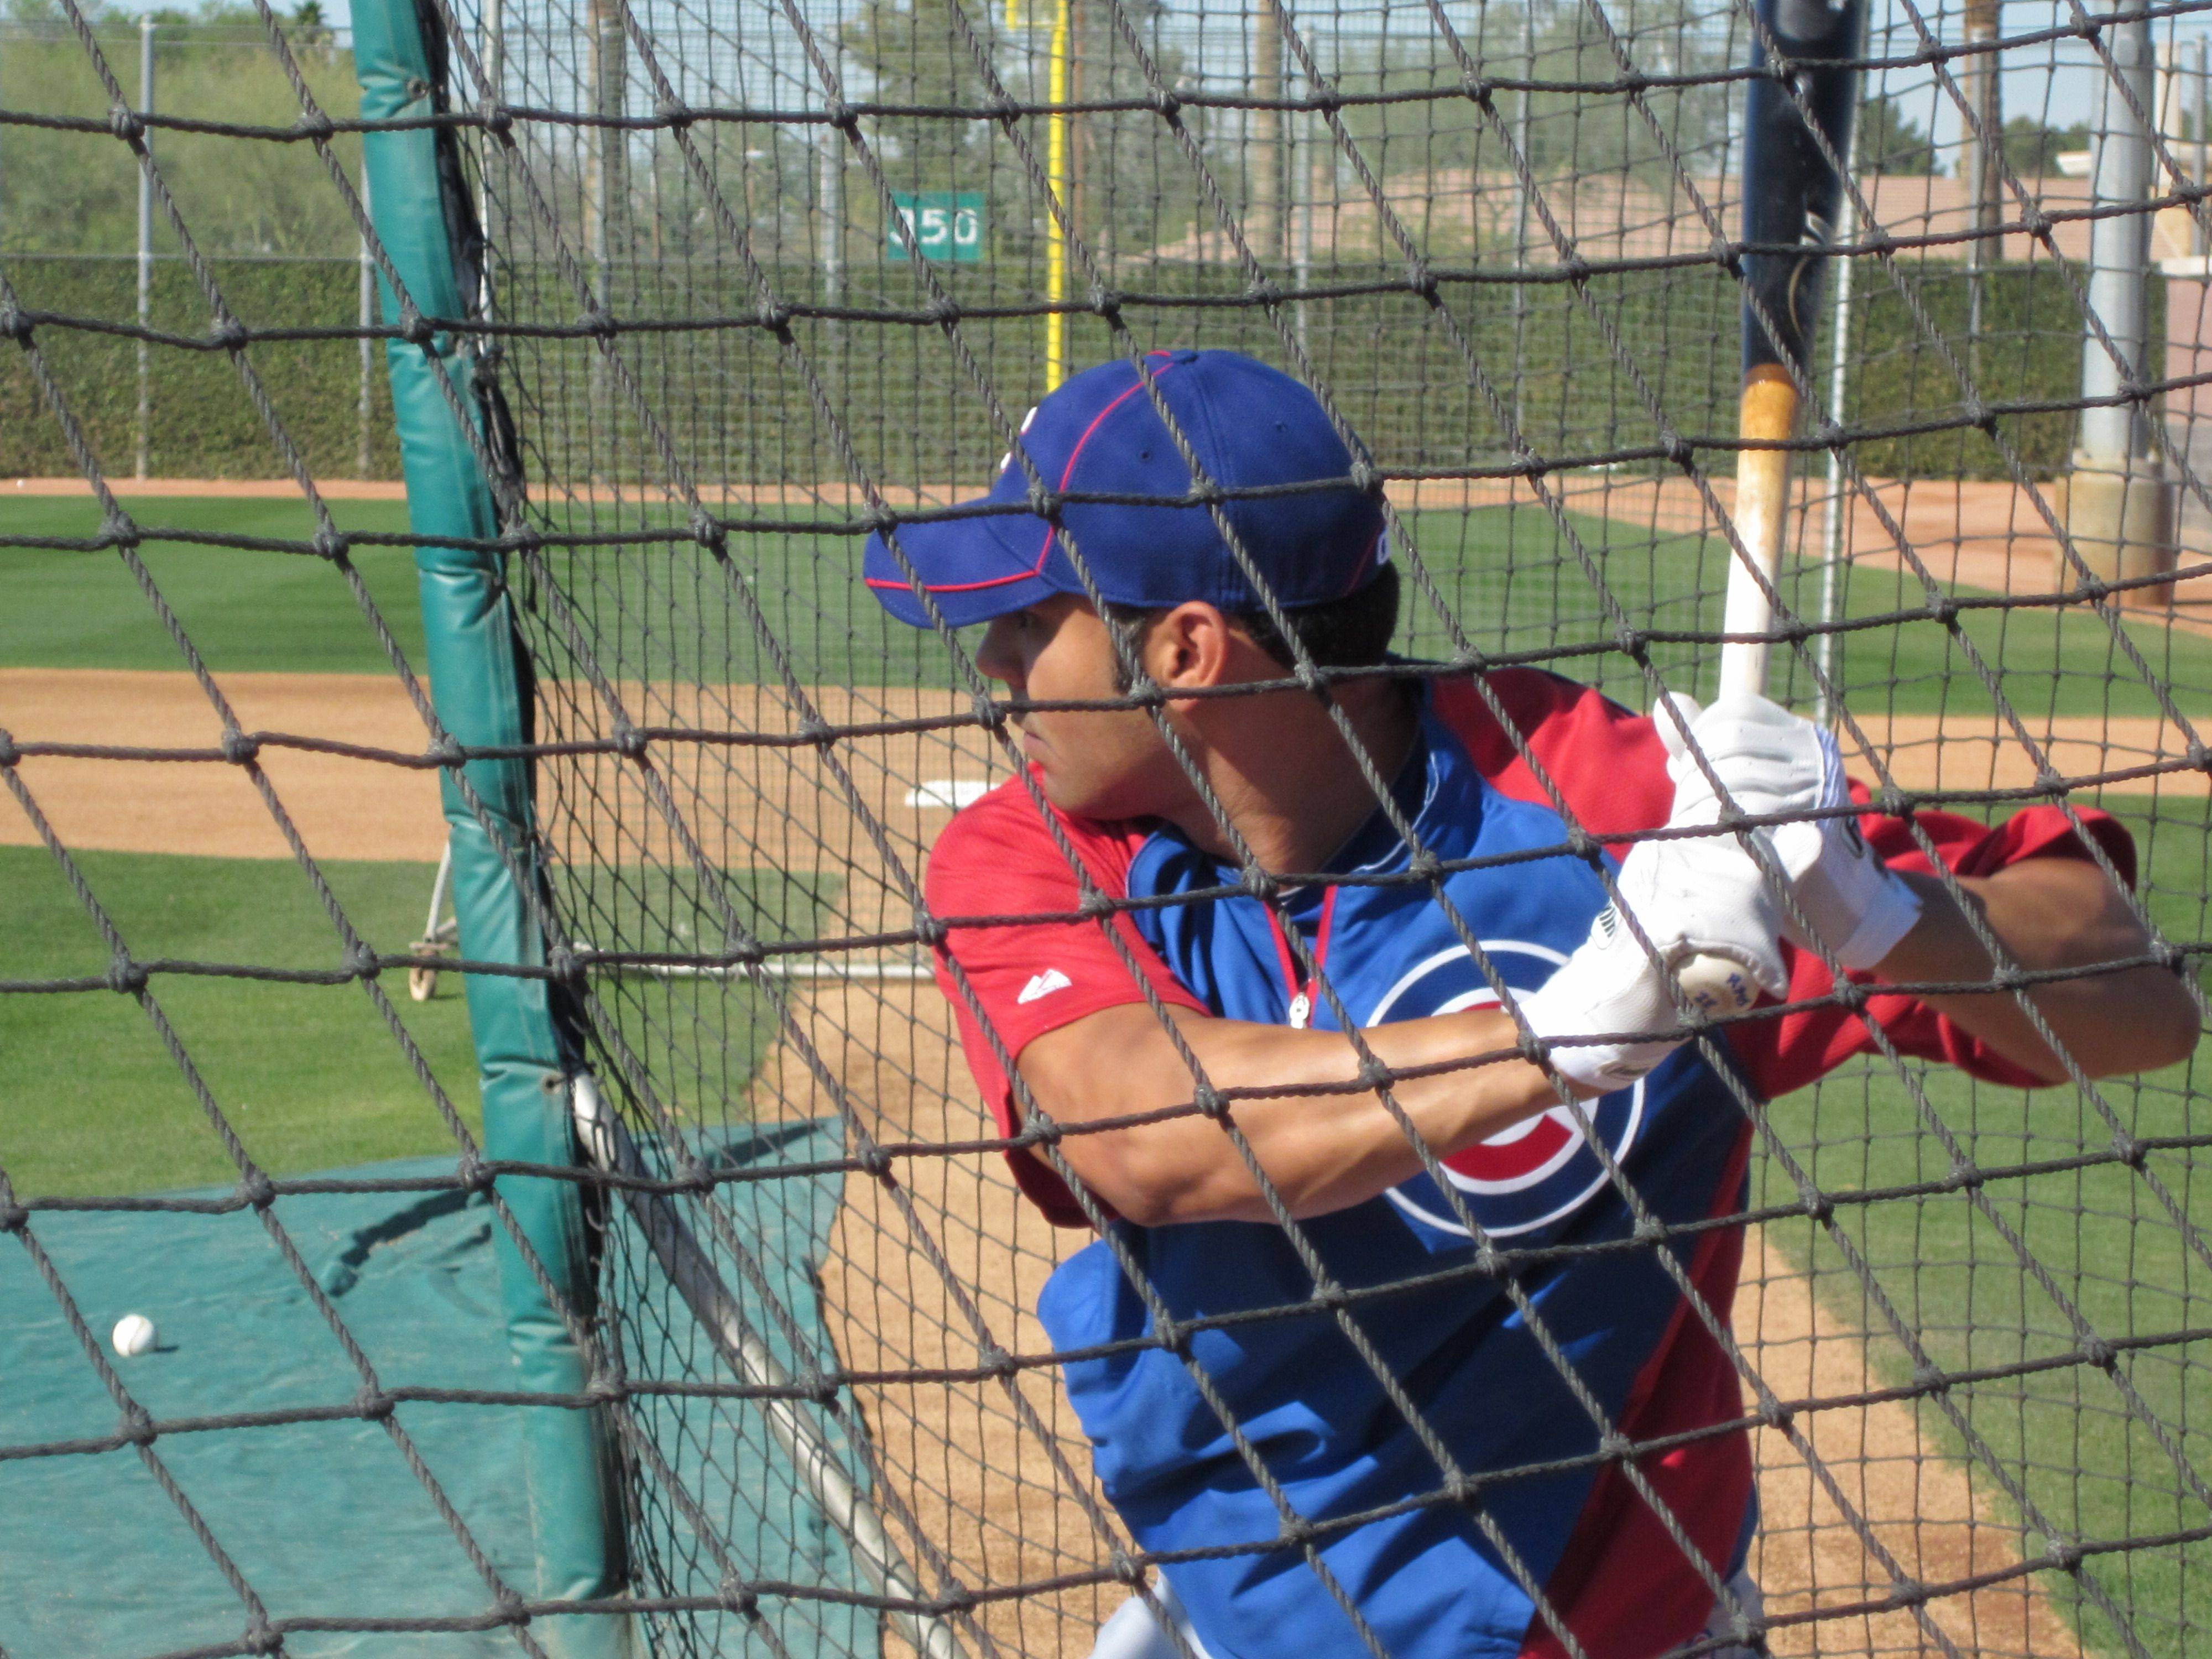 Images from Cubs players and personnel at spring training in Mesa on Thursday. 3B nonroster man Scott Moore awaiting a pitch in the cage